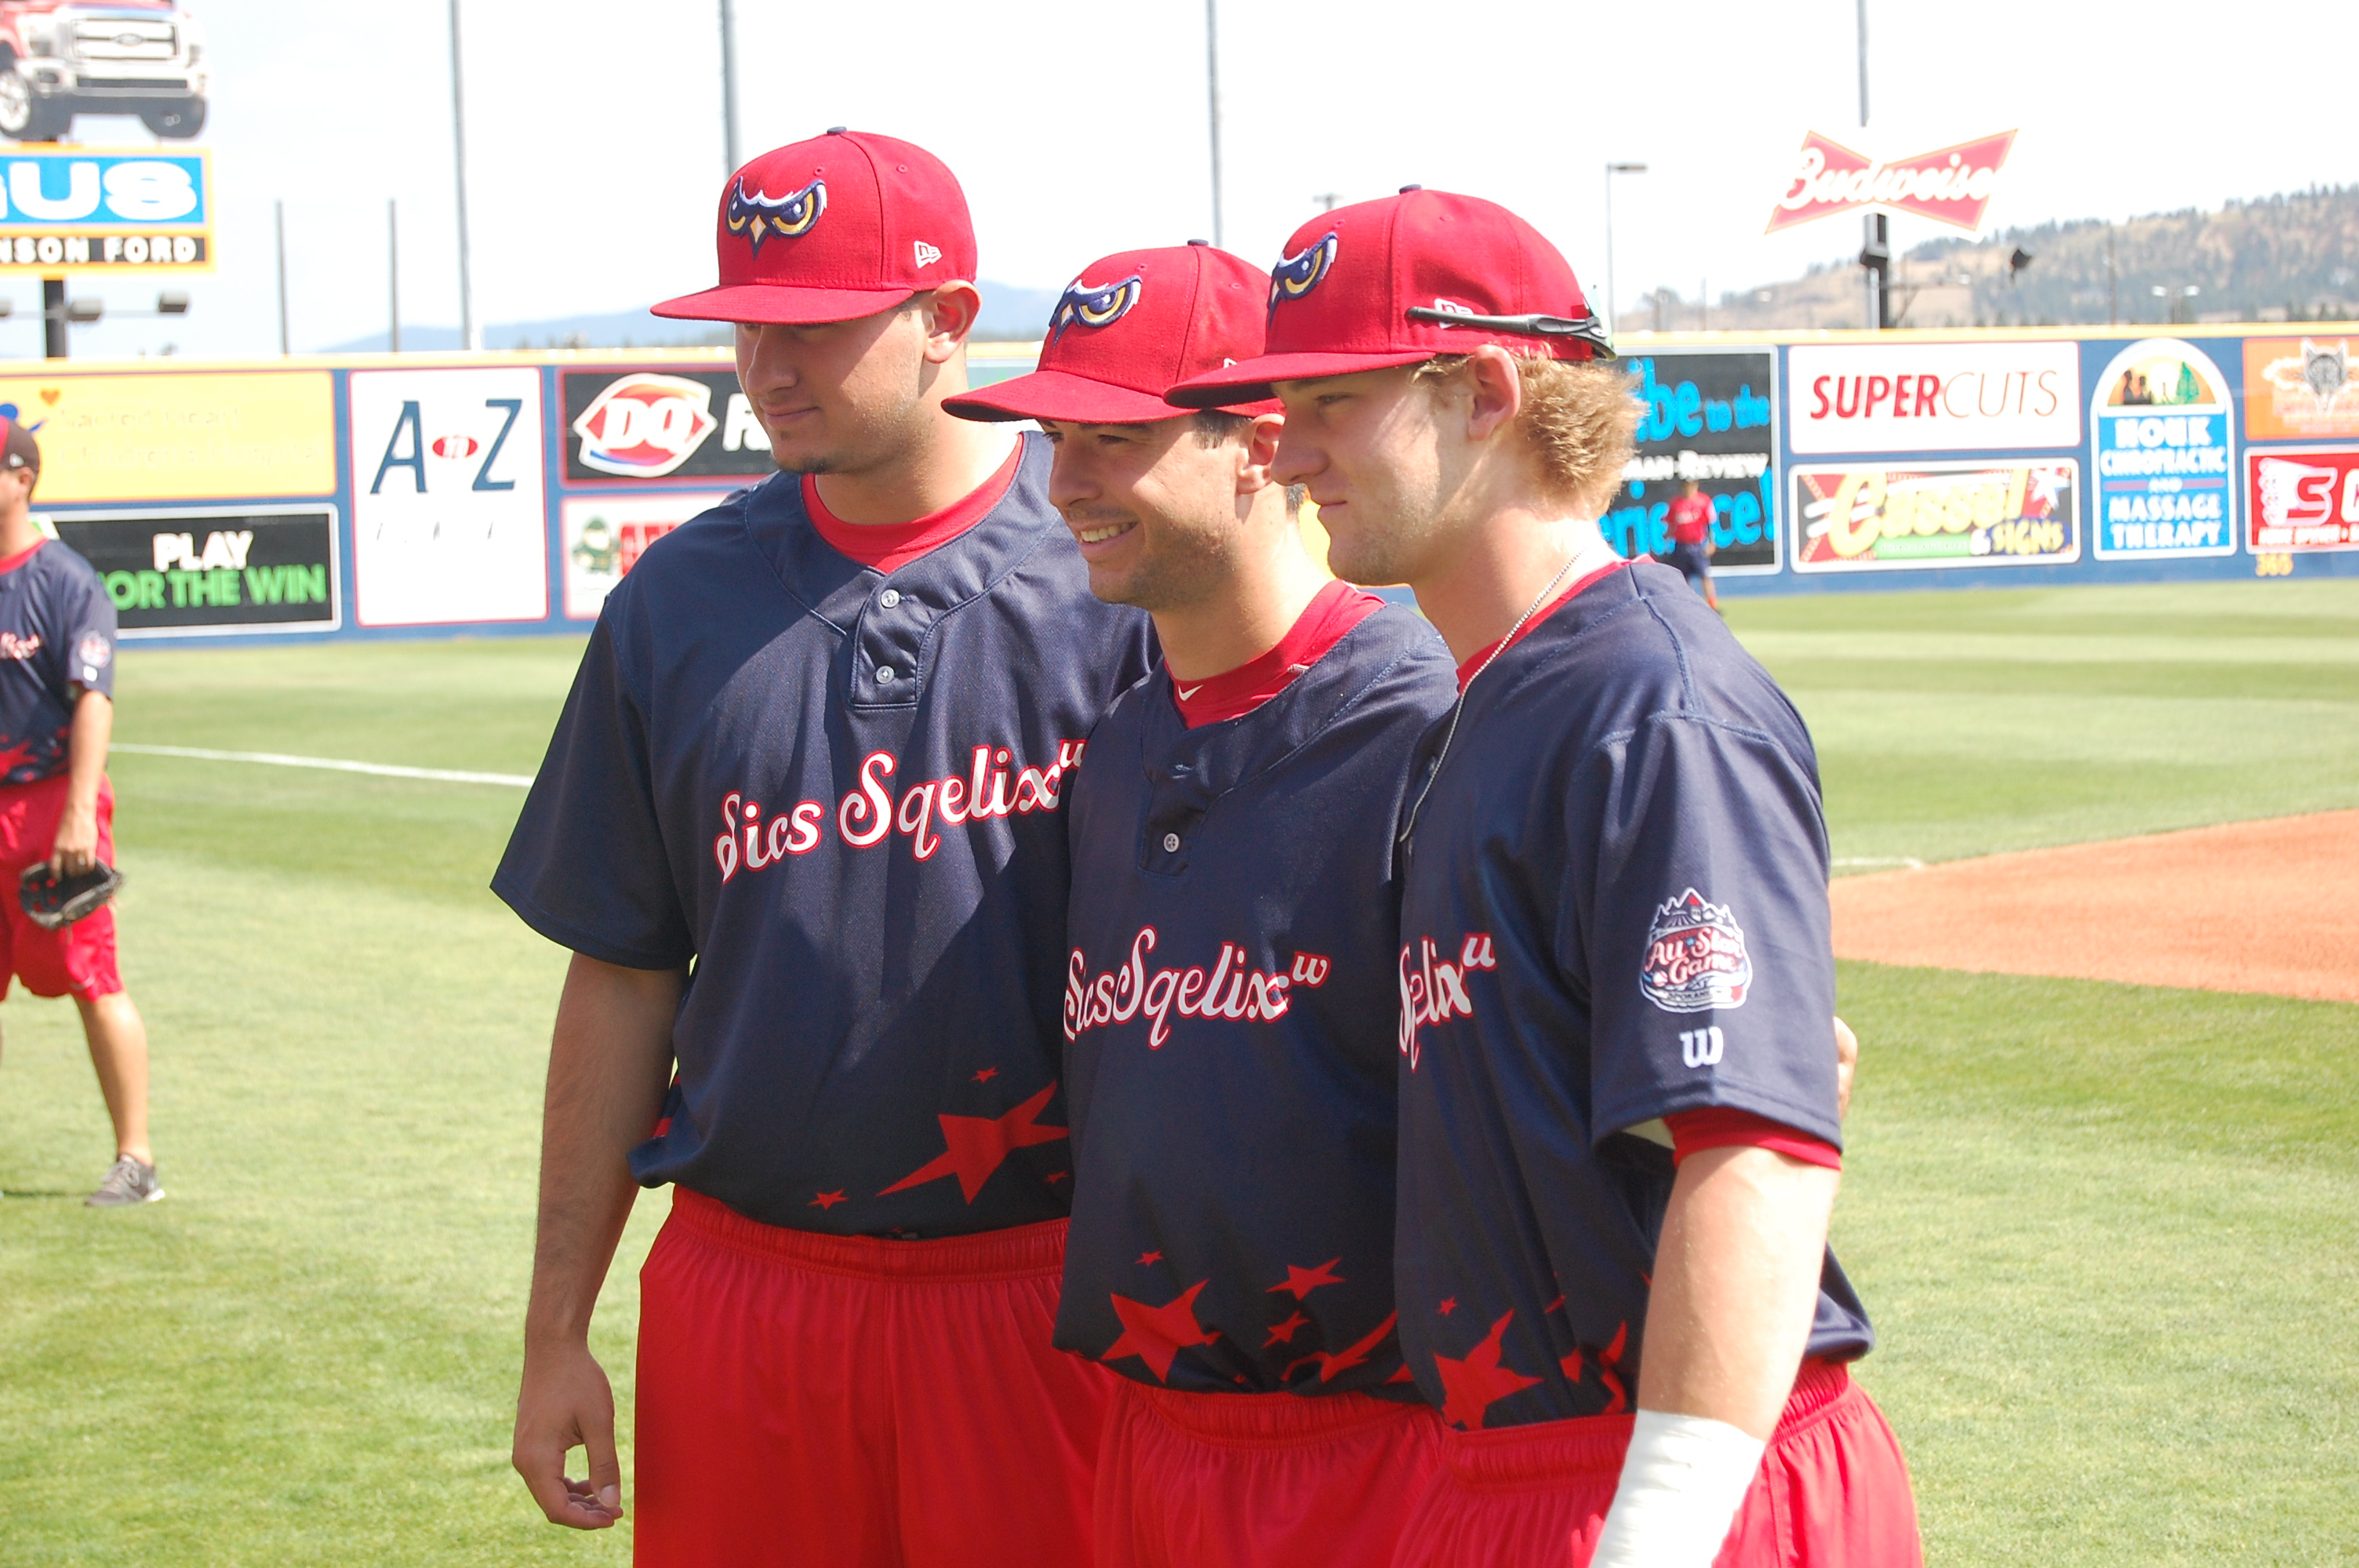 Joe Gatto (left) with two of his teammates from the Orem Owlz at the All-Star game.